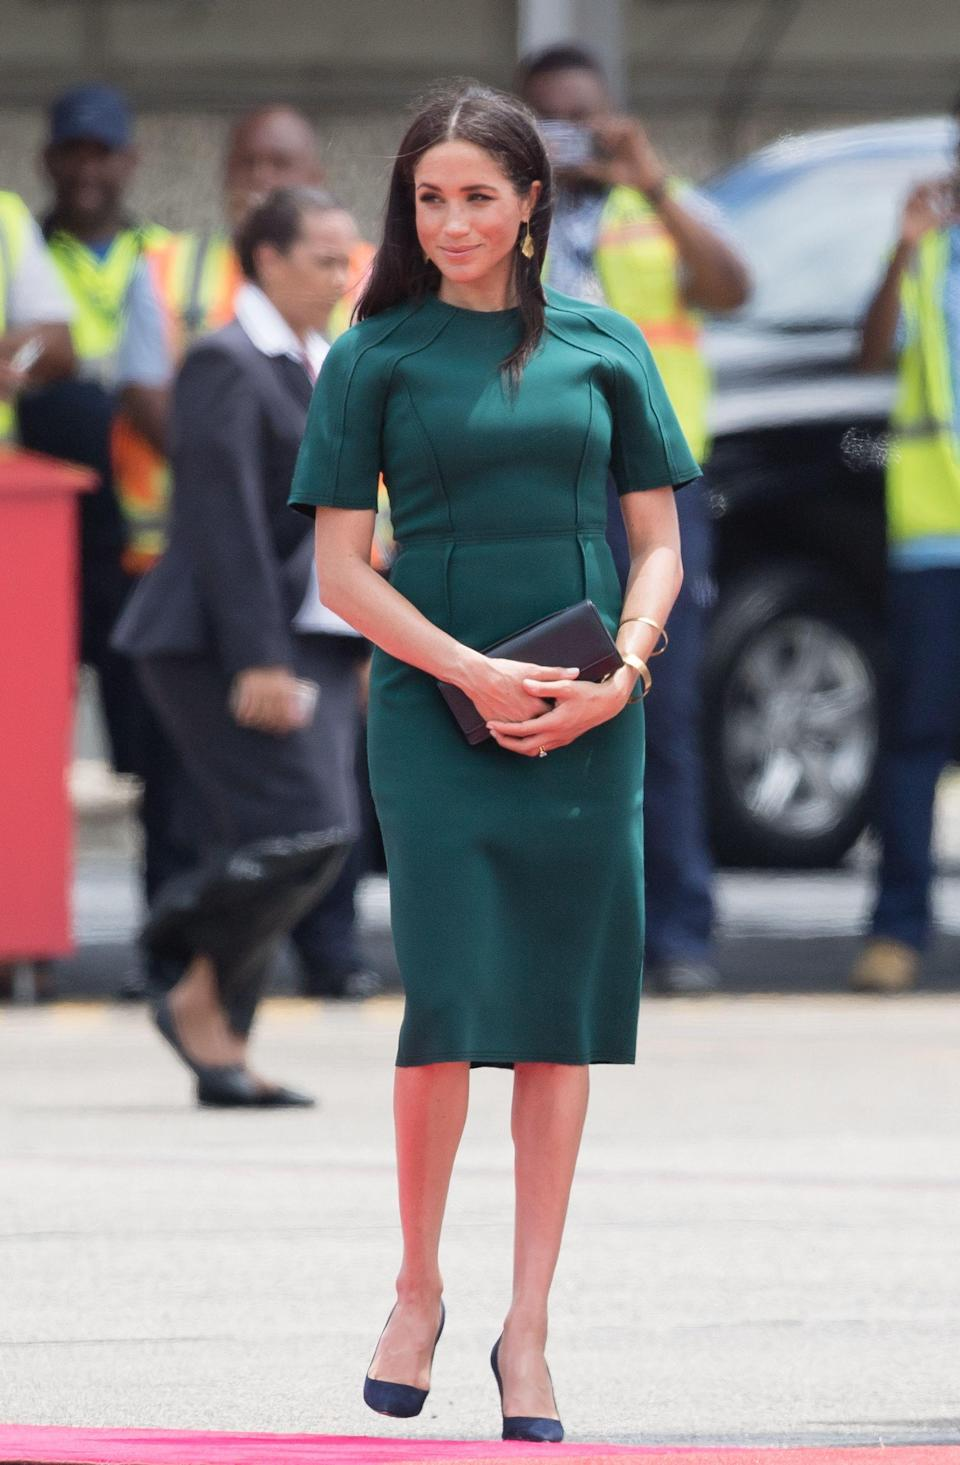 """<p>In Western Fiji Markle was dressed in a forest green shift dress by Canadian fashion designer <a href=""""https://www.net-a-porter.com/us/en/Shop/Designers/Jason_Wu?pn=1&npp=60&image_view=product&dScroll=0"""" rel=""""nofollow noopener"""" target=""""_blank"""" data-ylk=""""slk:Jason Wu"""" class=""""link rapid-noclick-resp"""">Jason Wu</a>, the mother-to-be accessorised her look with black suede <a href=""""https://www.google.co.uk/aclk?sa=L&ai=DChcSEwj7mr_lmqHeAhWD4ncKHT7ECwkYABAPGgJlZg&sig=AOD64_0XSyNrPO_fC8Sx9w_NQ5J87WYxig&ctype=5&ved=0ahUKEwjX4bflmqHeAhVSJ1AKHRAXBT8Qww8IcA"""" rel=""""nofollow noopener"""" target=""""_blank"""" data-ylk=""""slk:Manolo Blank BB pumps"""" class=""""link rapid-noclick-resp"""">Manolo Blank BB pumps</a> and a pair of statement gold drop earrings.</p>"""